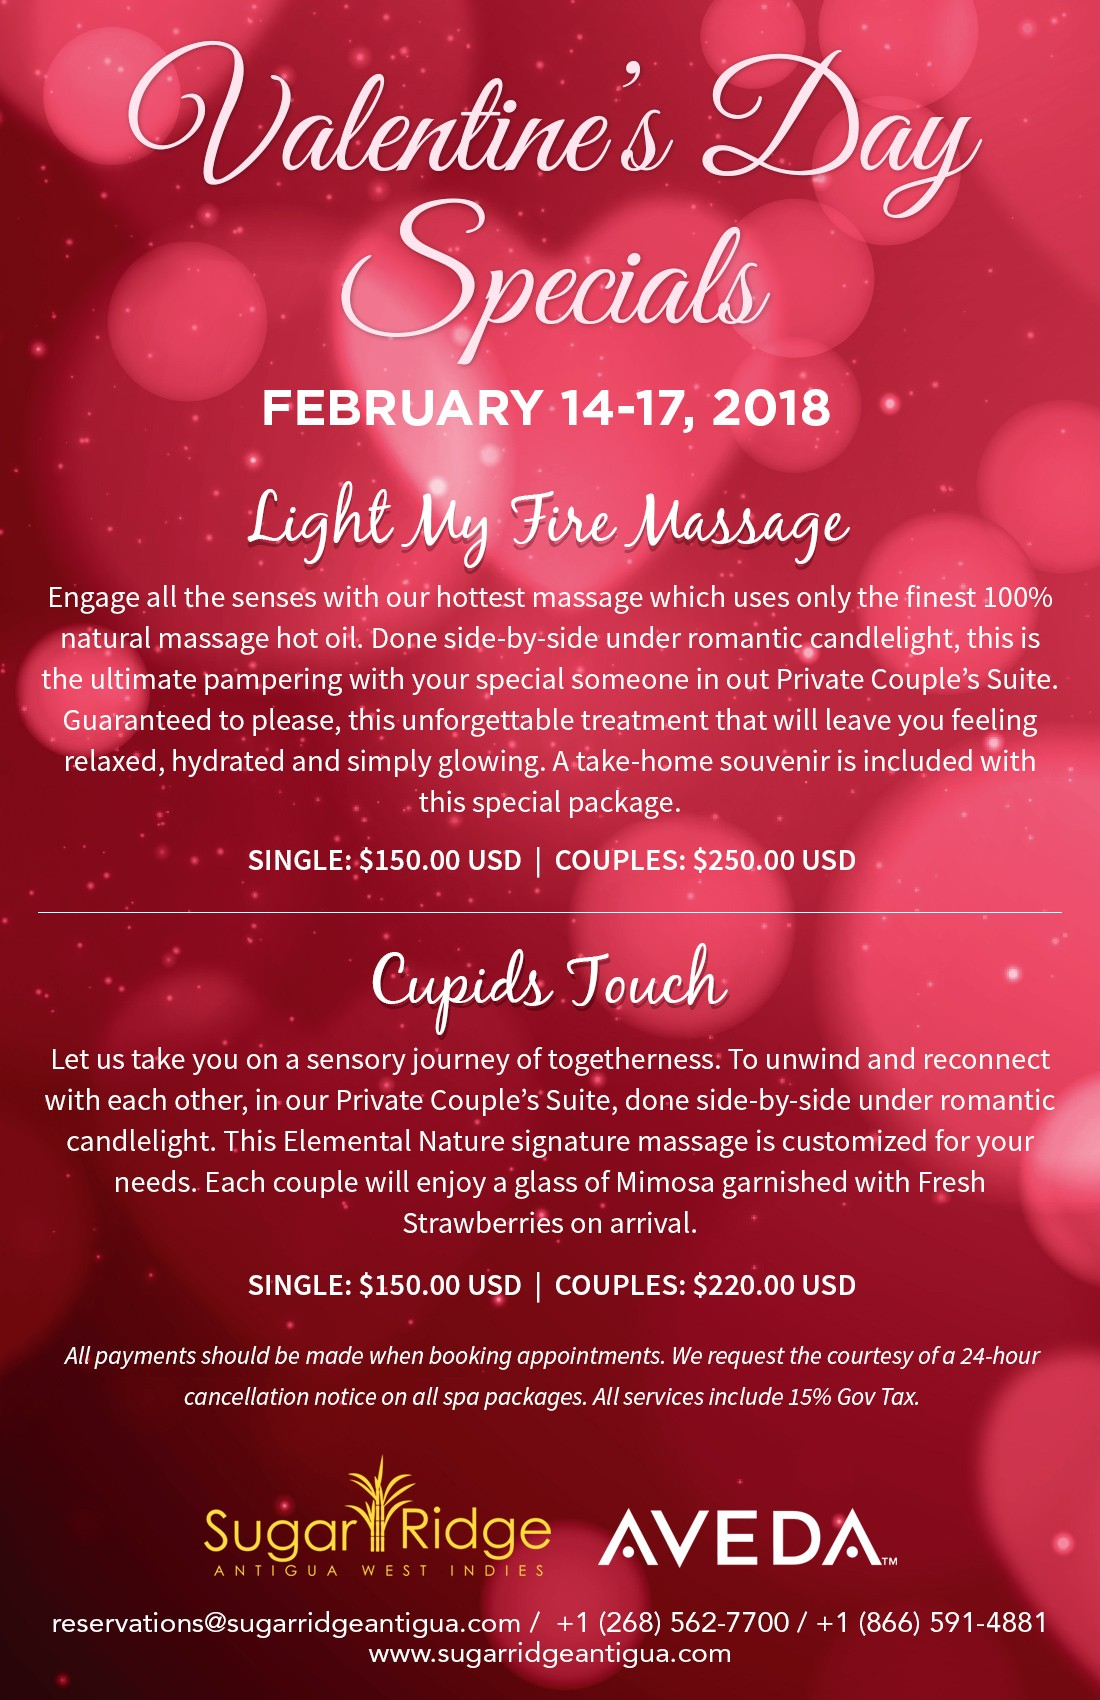 Valentineu0027s Day Specials